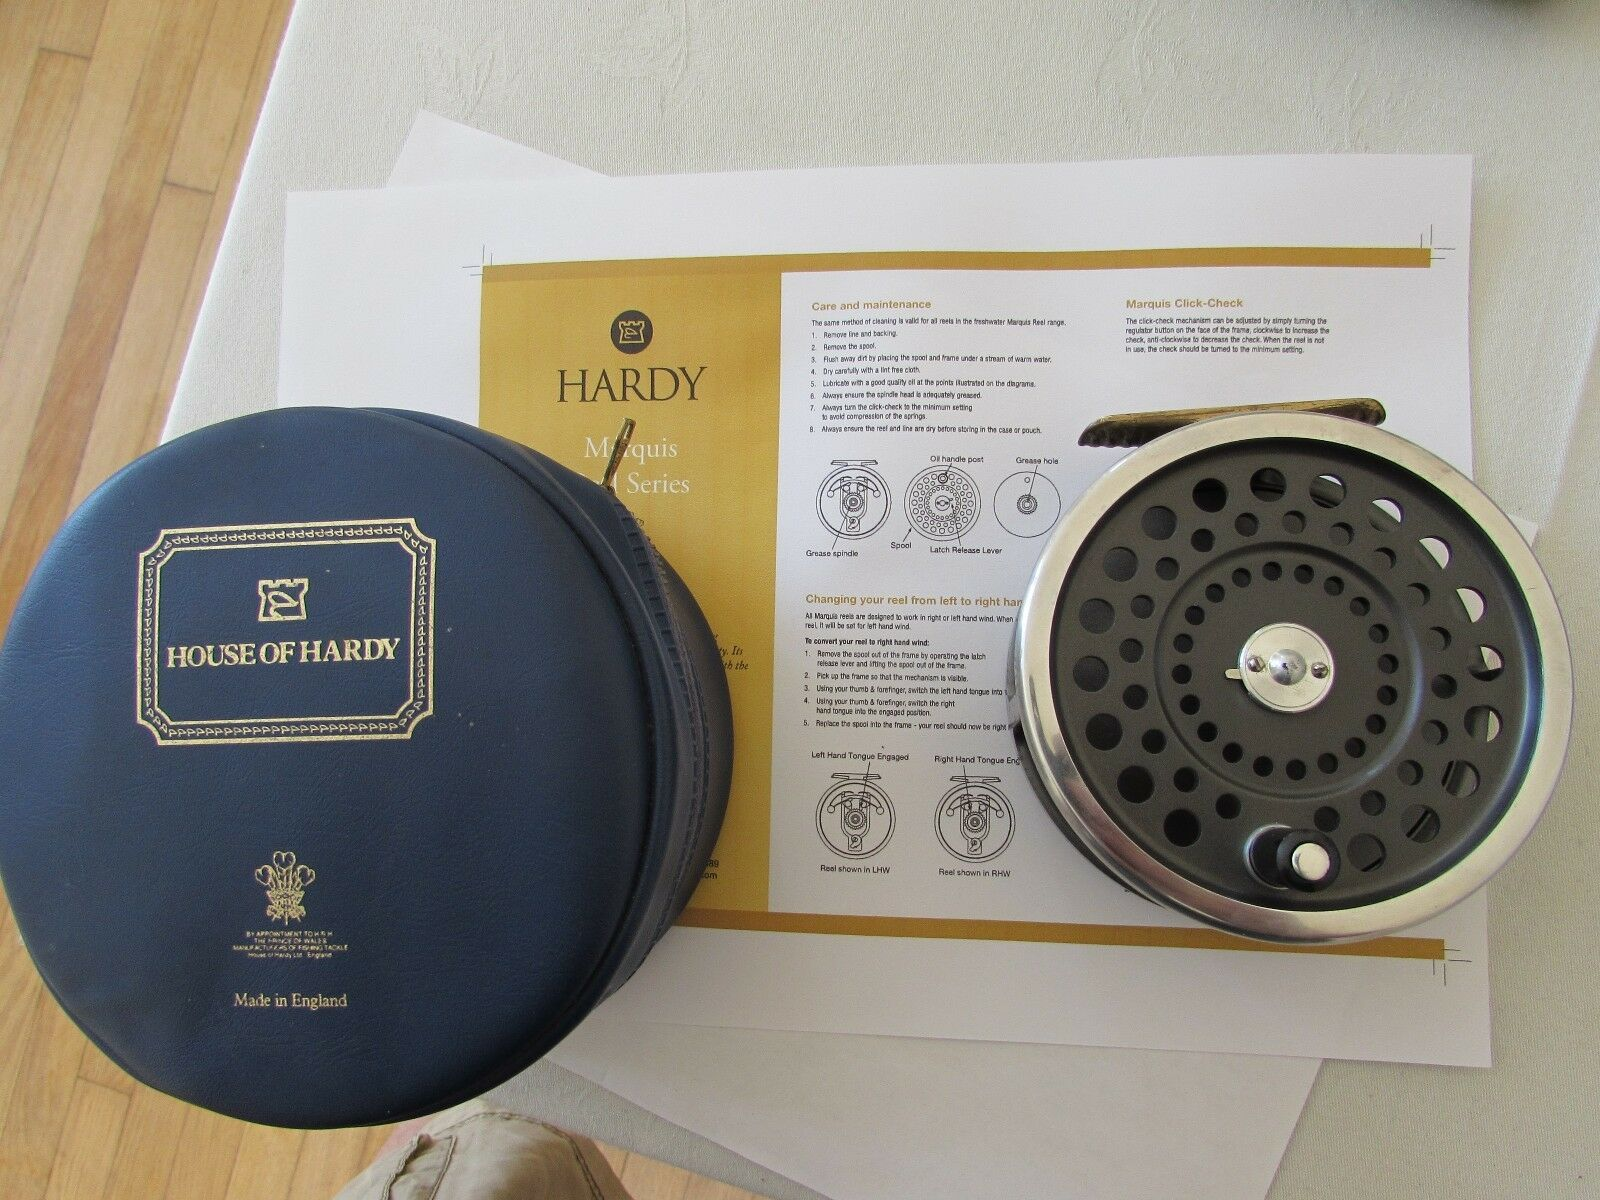 V good vintage original Hardy Marquis no. 2 salmon fly fishing reel ..& case .